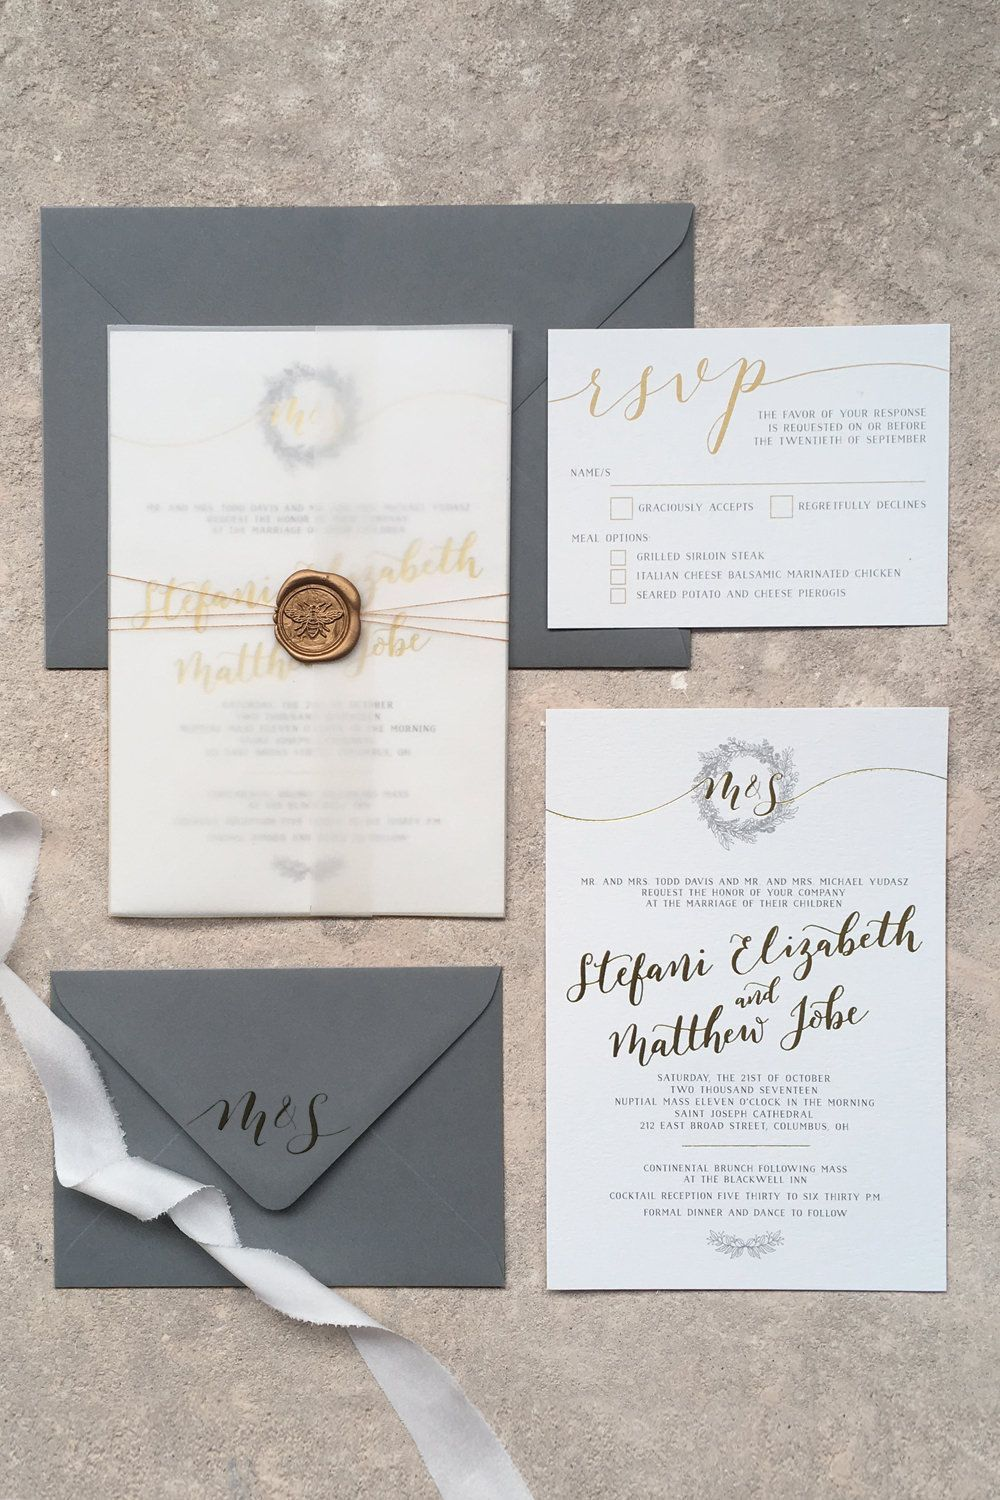 Vellum Wrap For Wedding Invitation By Emerald Paper Design In 2020 Wedding Stationery Wedding Invitations Diy Wedding Stationery